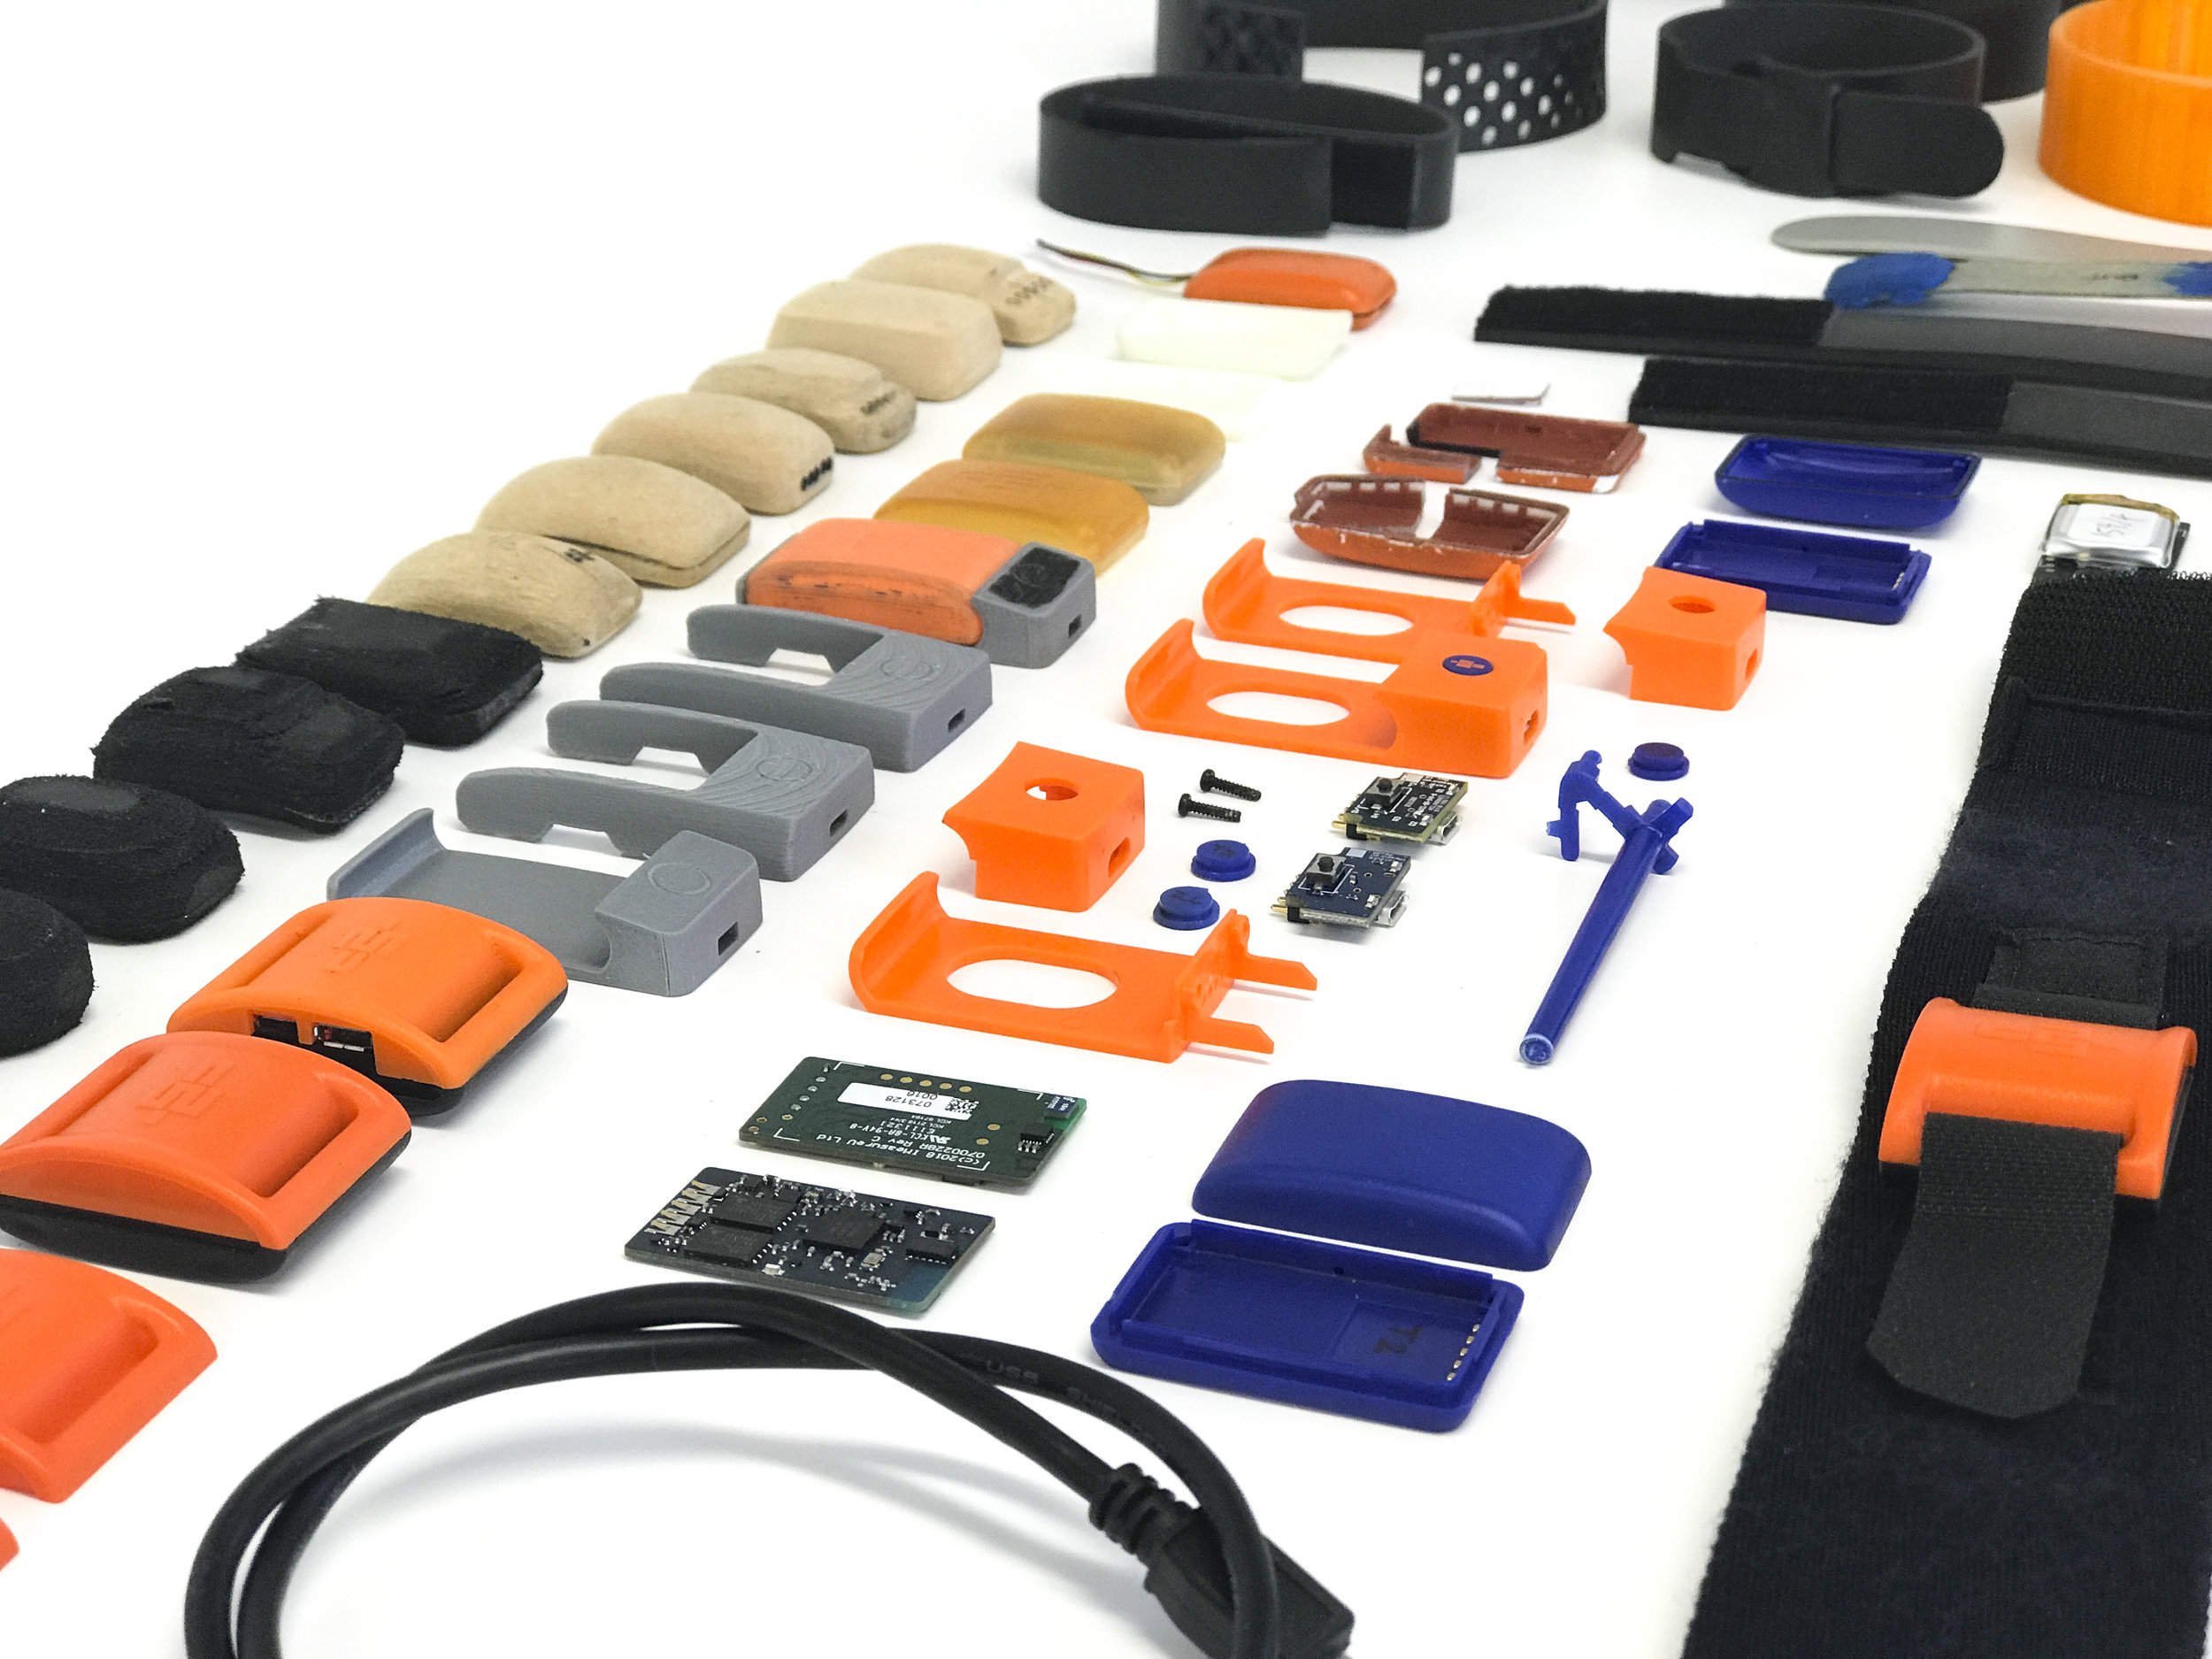 An assortment of prototypes and ideas tested in the development of the device